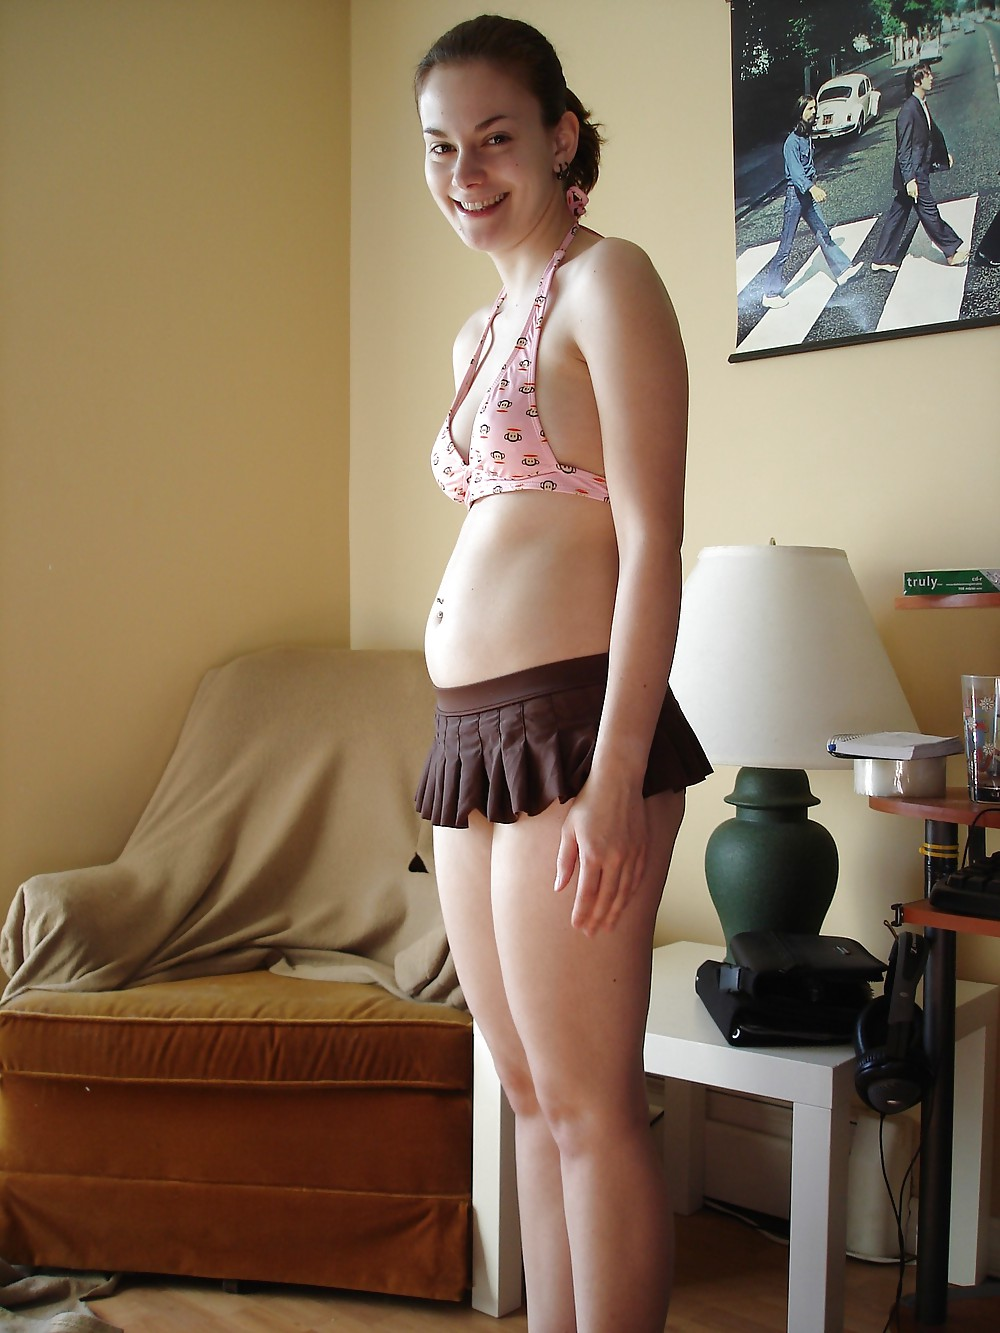 Pregnant - Before, During And After 1 - 27 Pics - Xhamstercom-8042